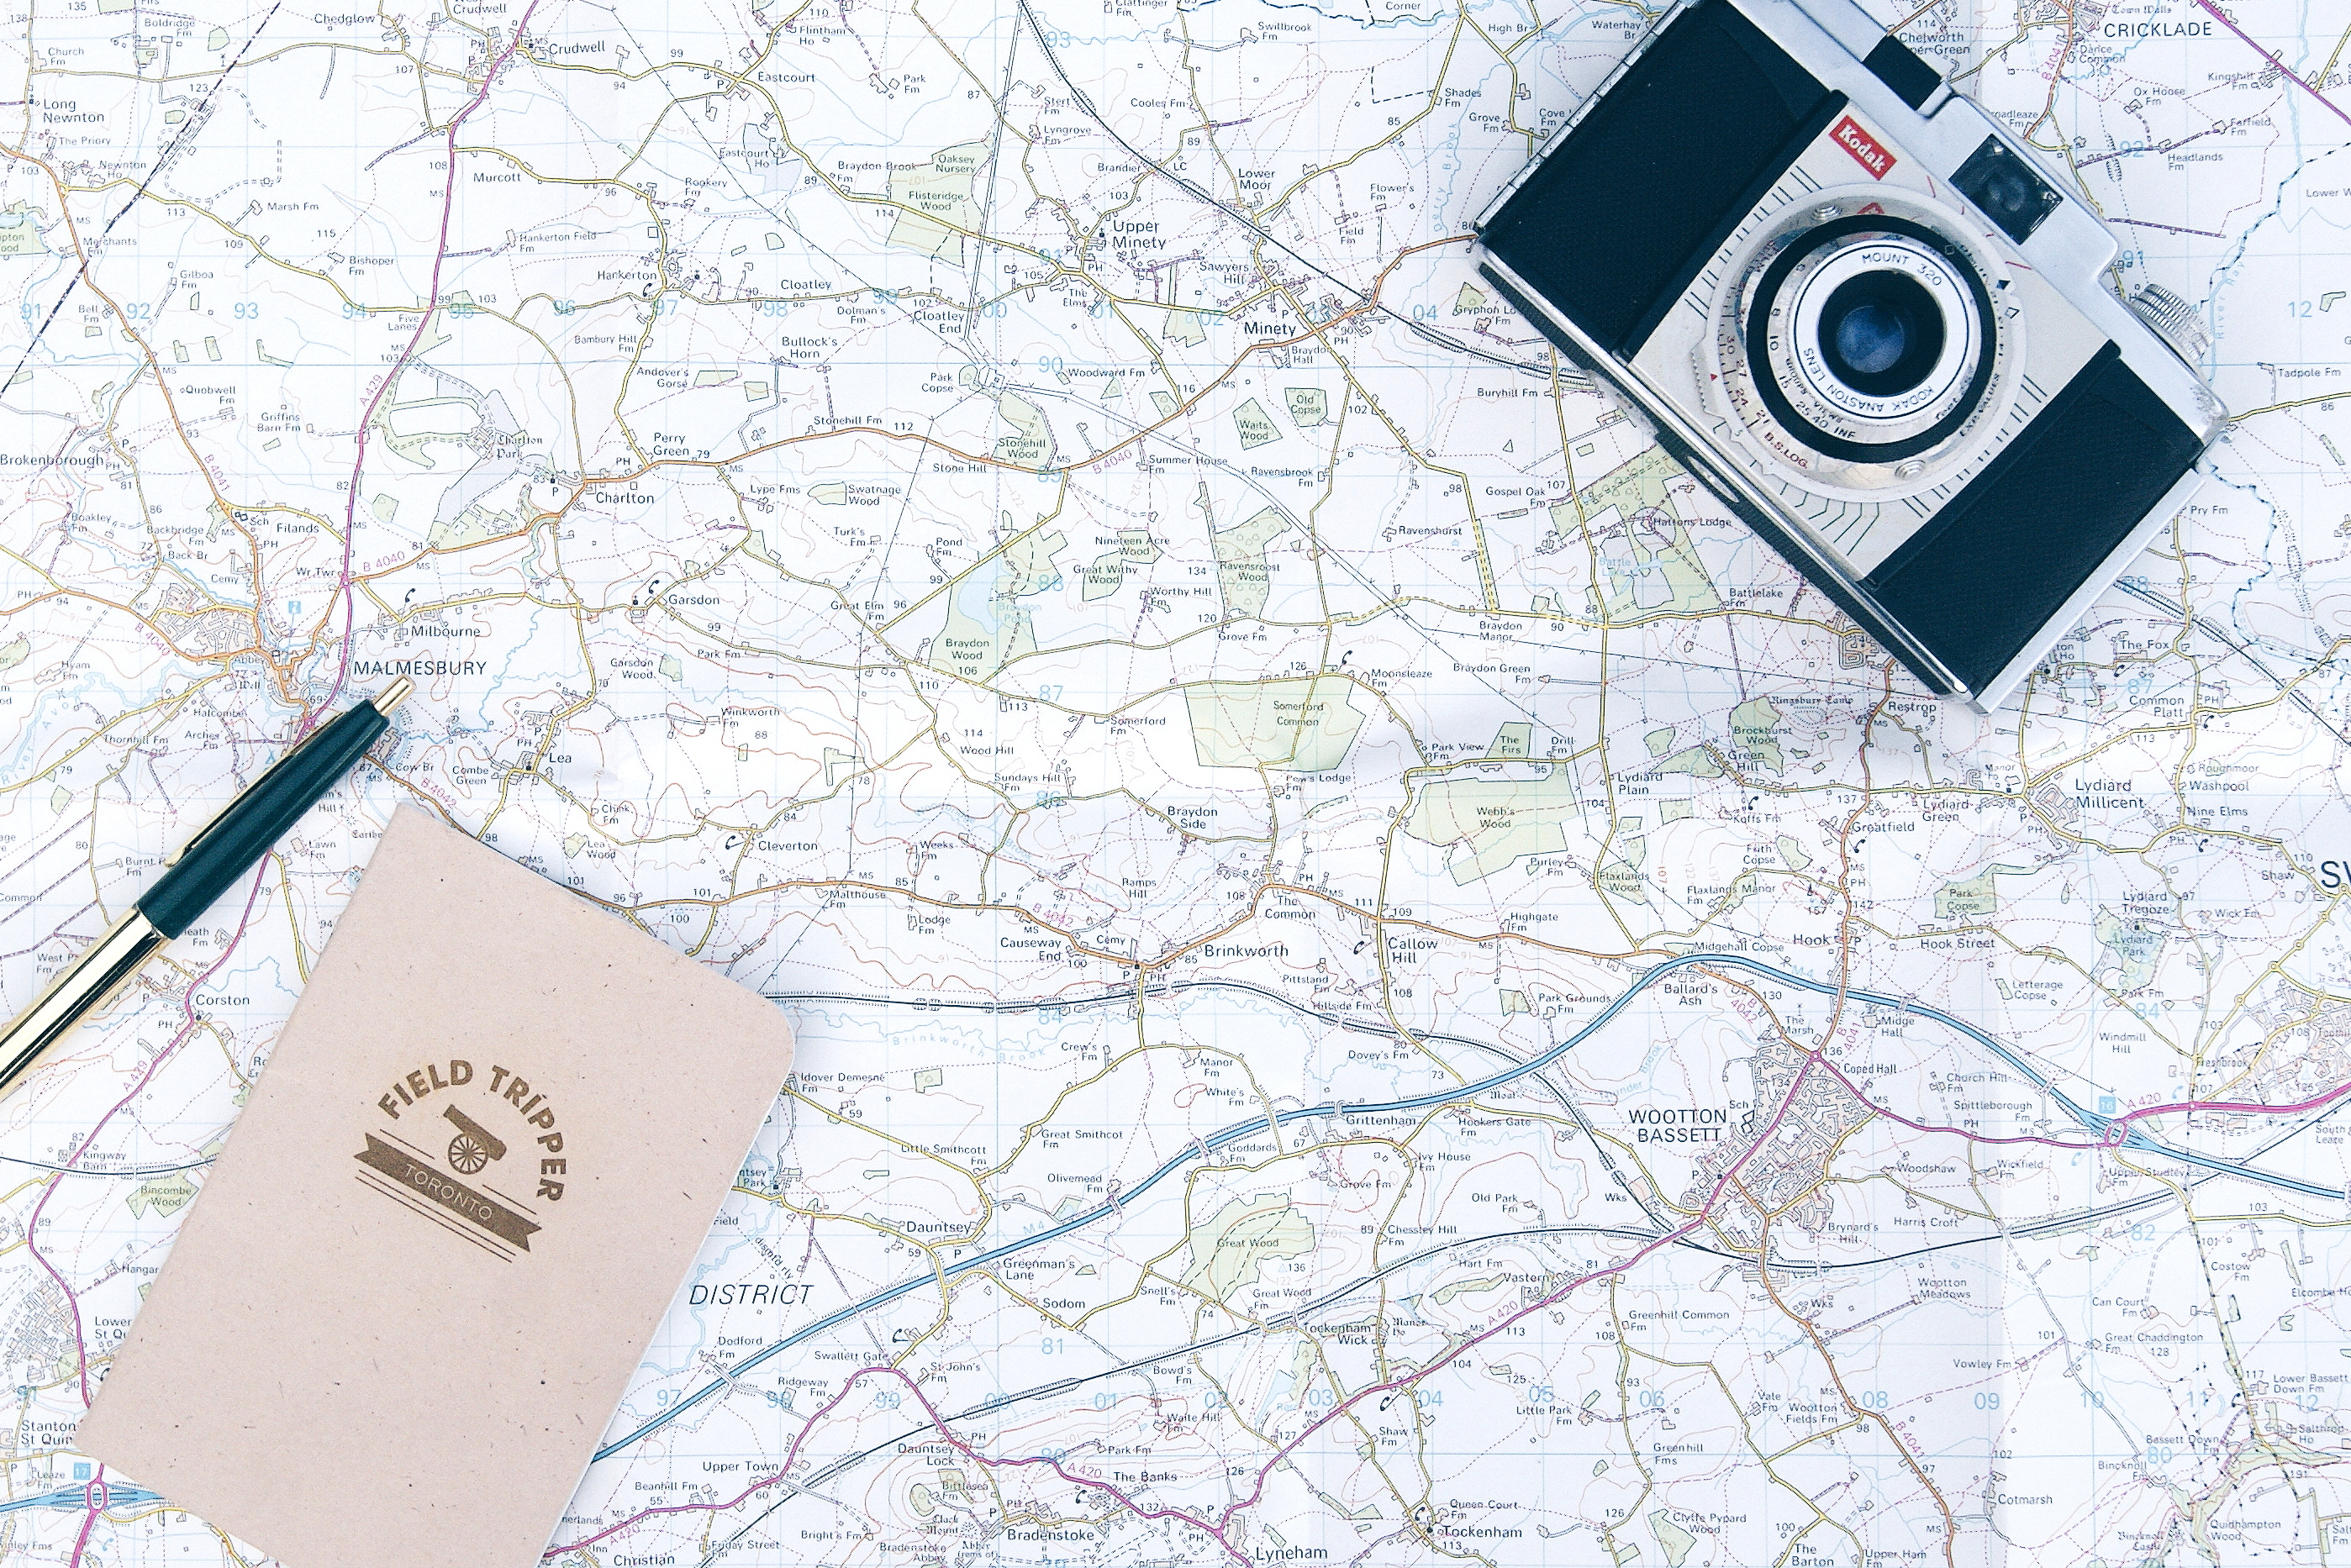 Why Travel Planning Should Start with A Map | GKM on hunting maps, europe maps, germany maps, france maps, information maps, italy maps, decision making maps, transportation maps, australia maps, turkey maps, canada maps, halloween maps, asia maps, new zealand maps,